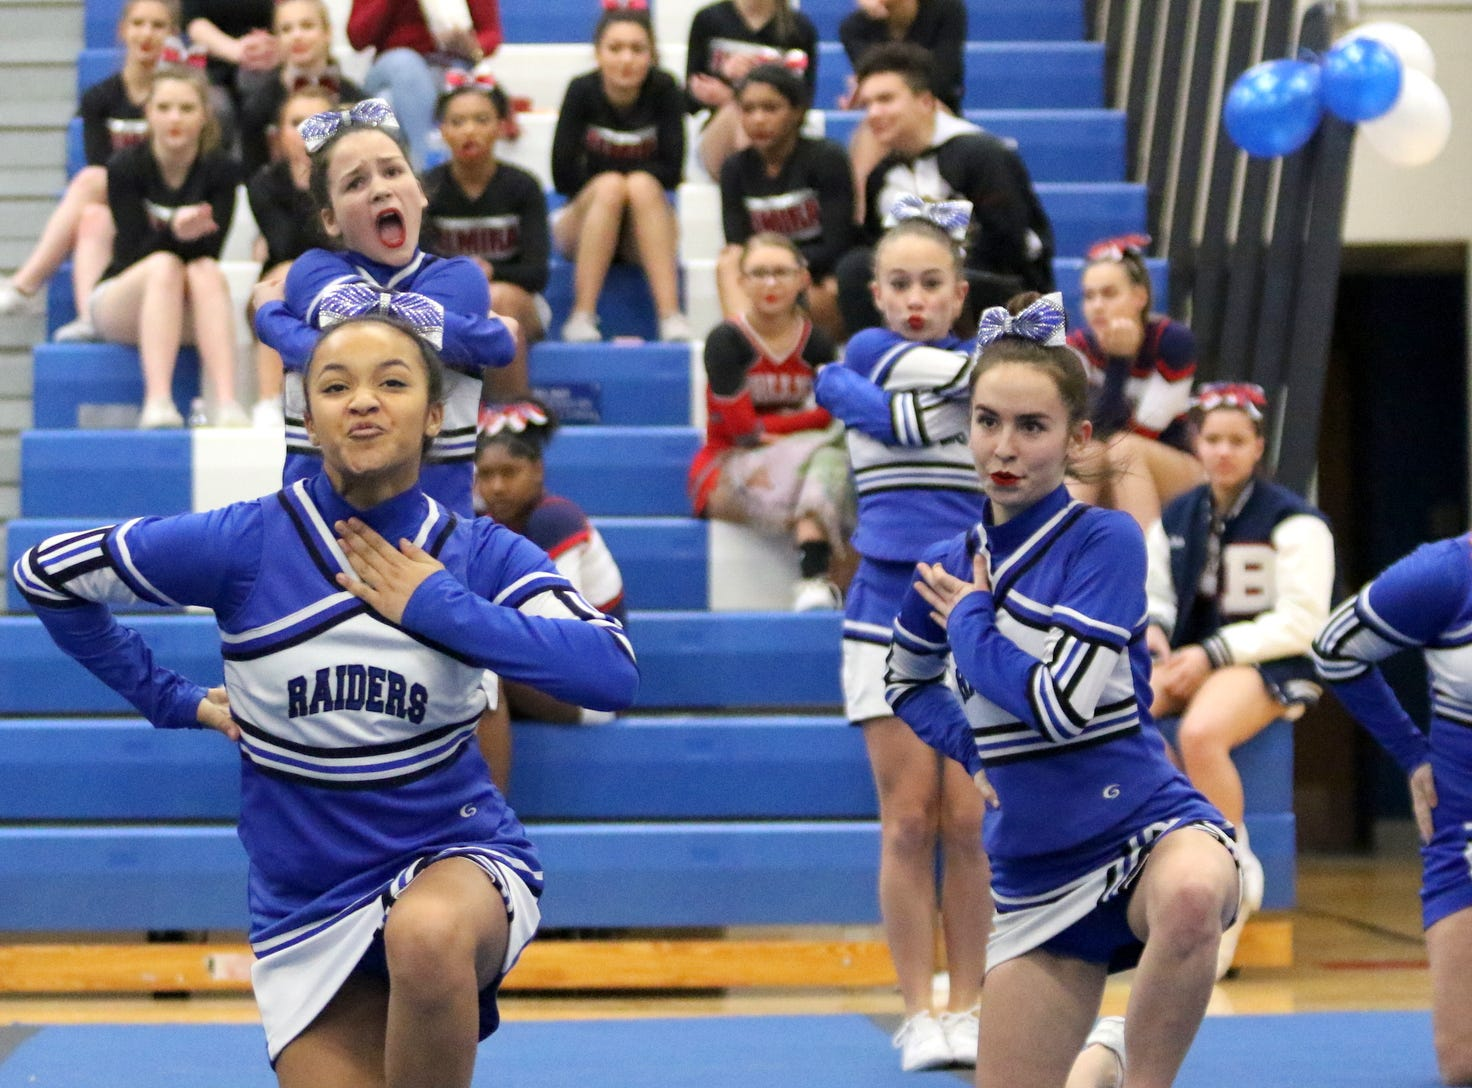 Horseheads junior varsity cheerleaders compete at the STAC Winter Cheer Championships on Feb. 16, 2019 at Horseheads Middle School.